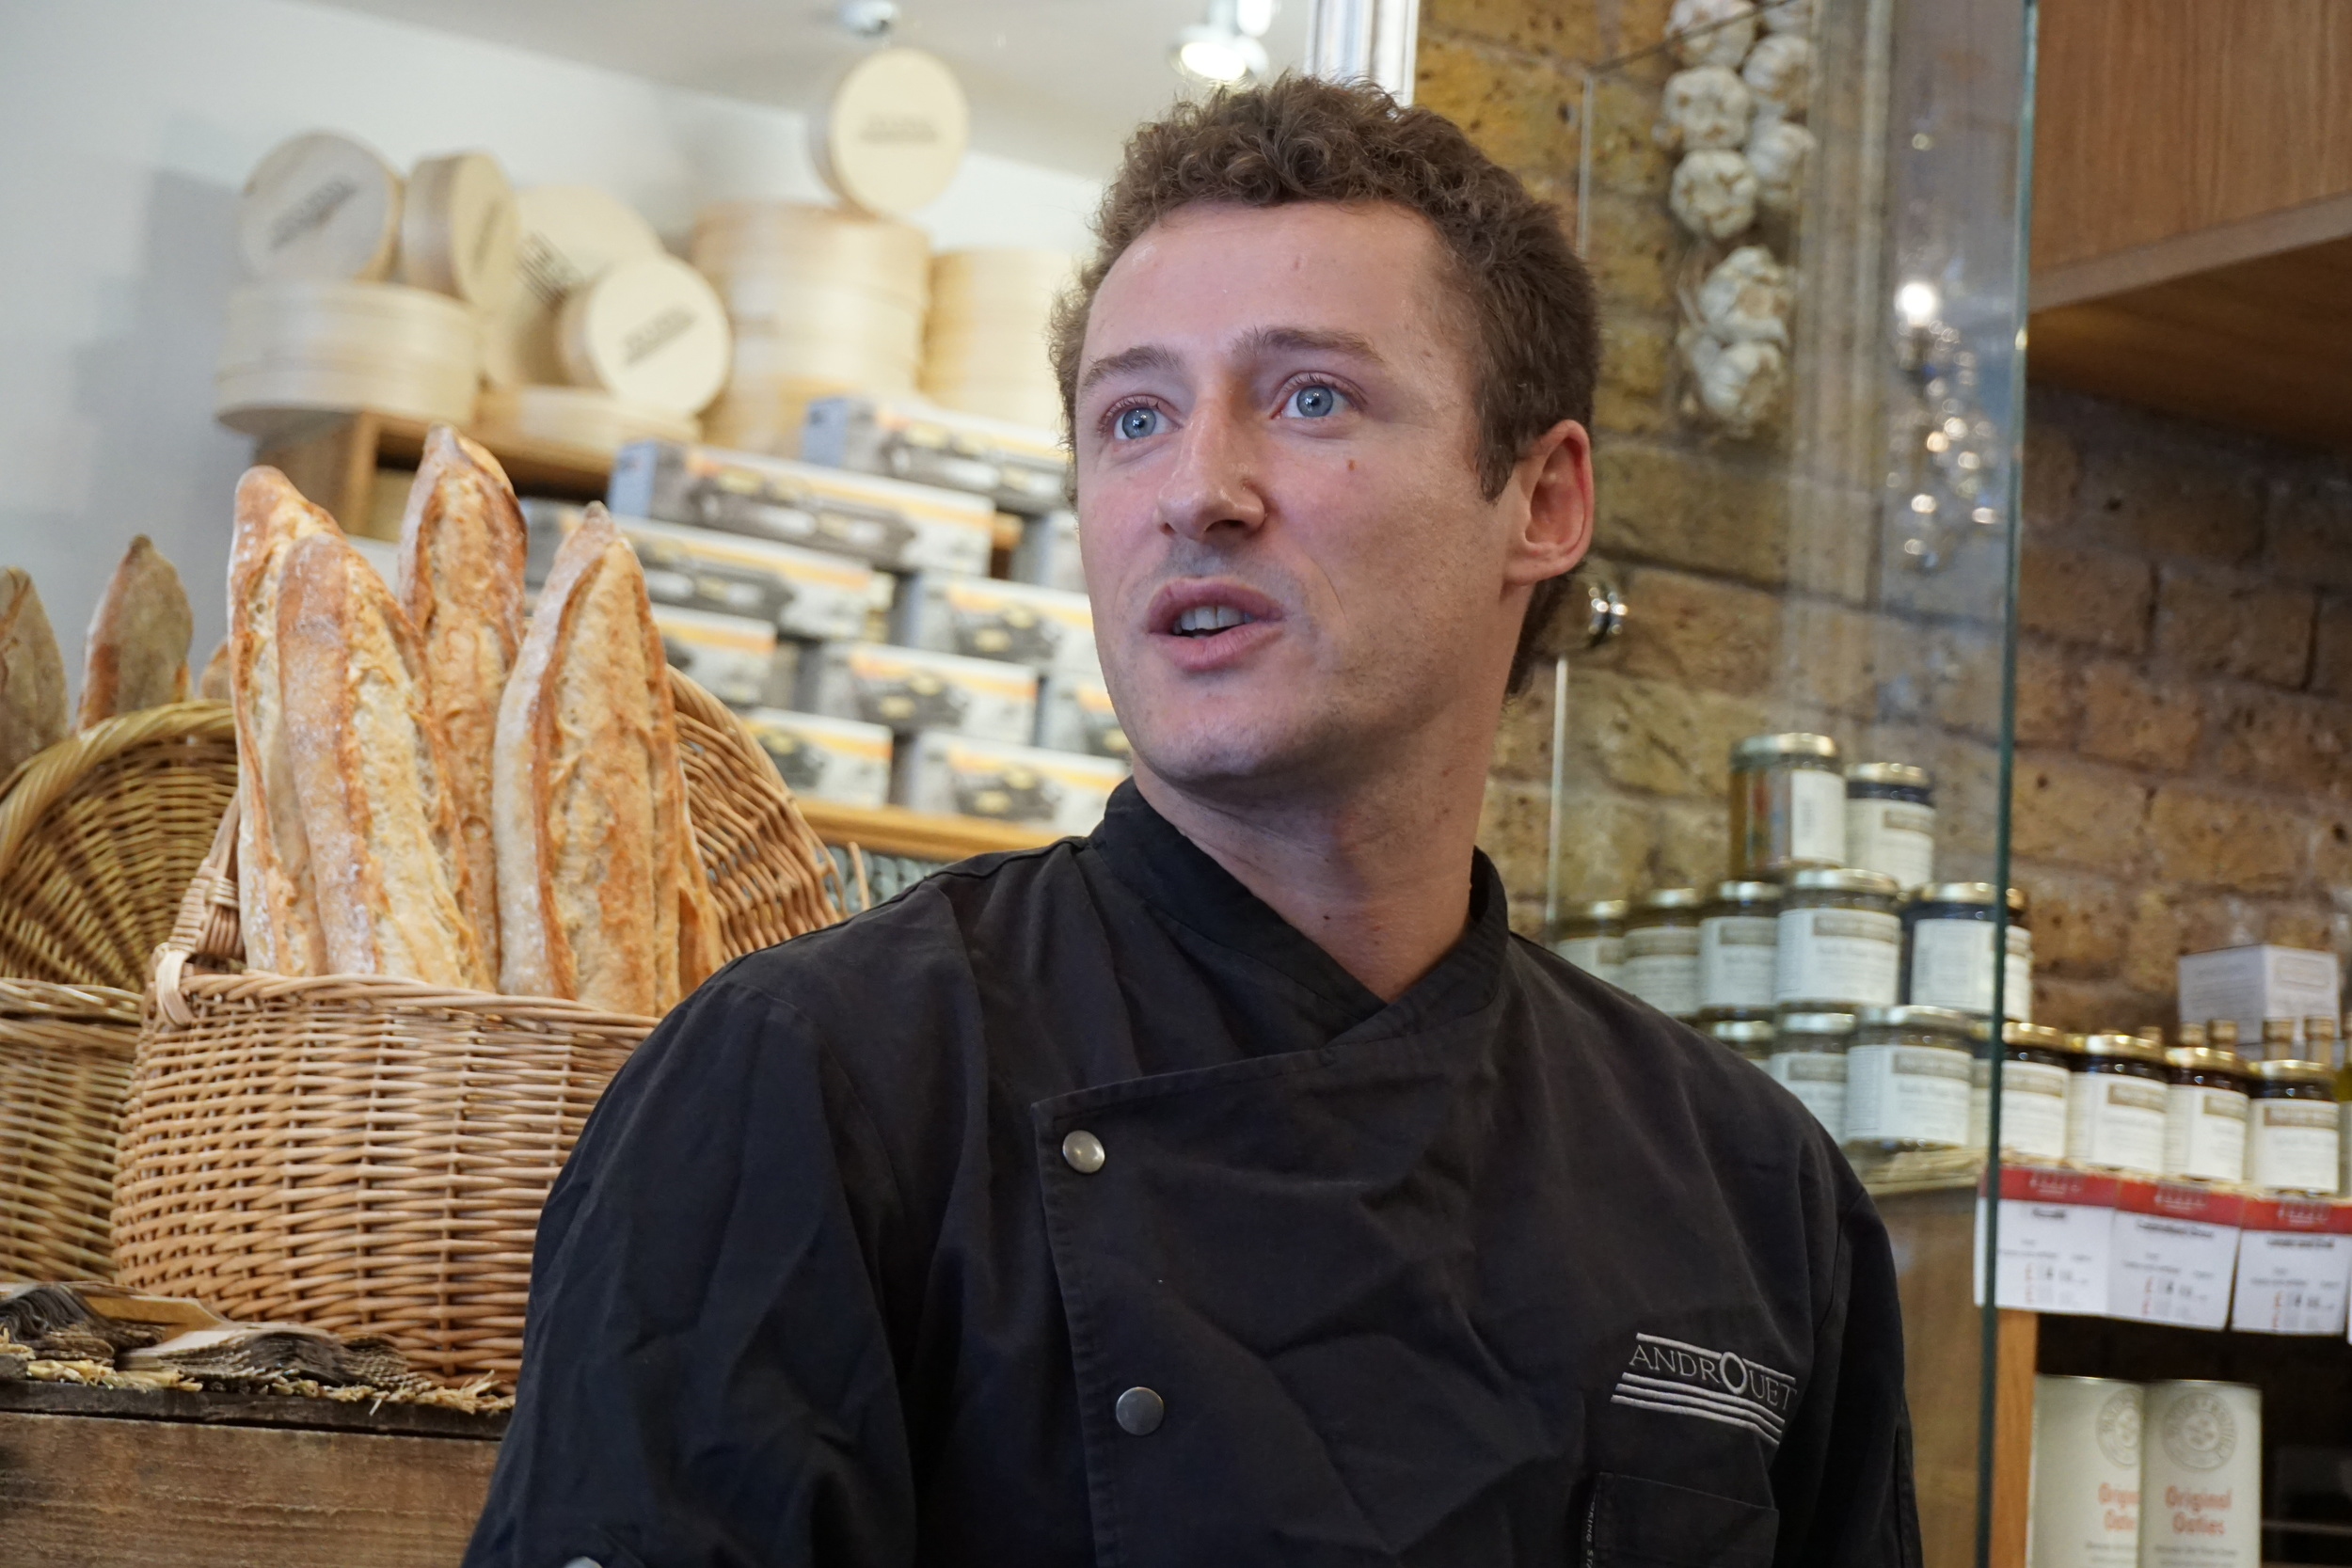 Androuet's cheese expert